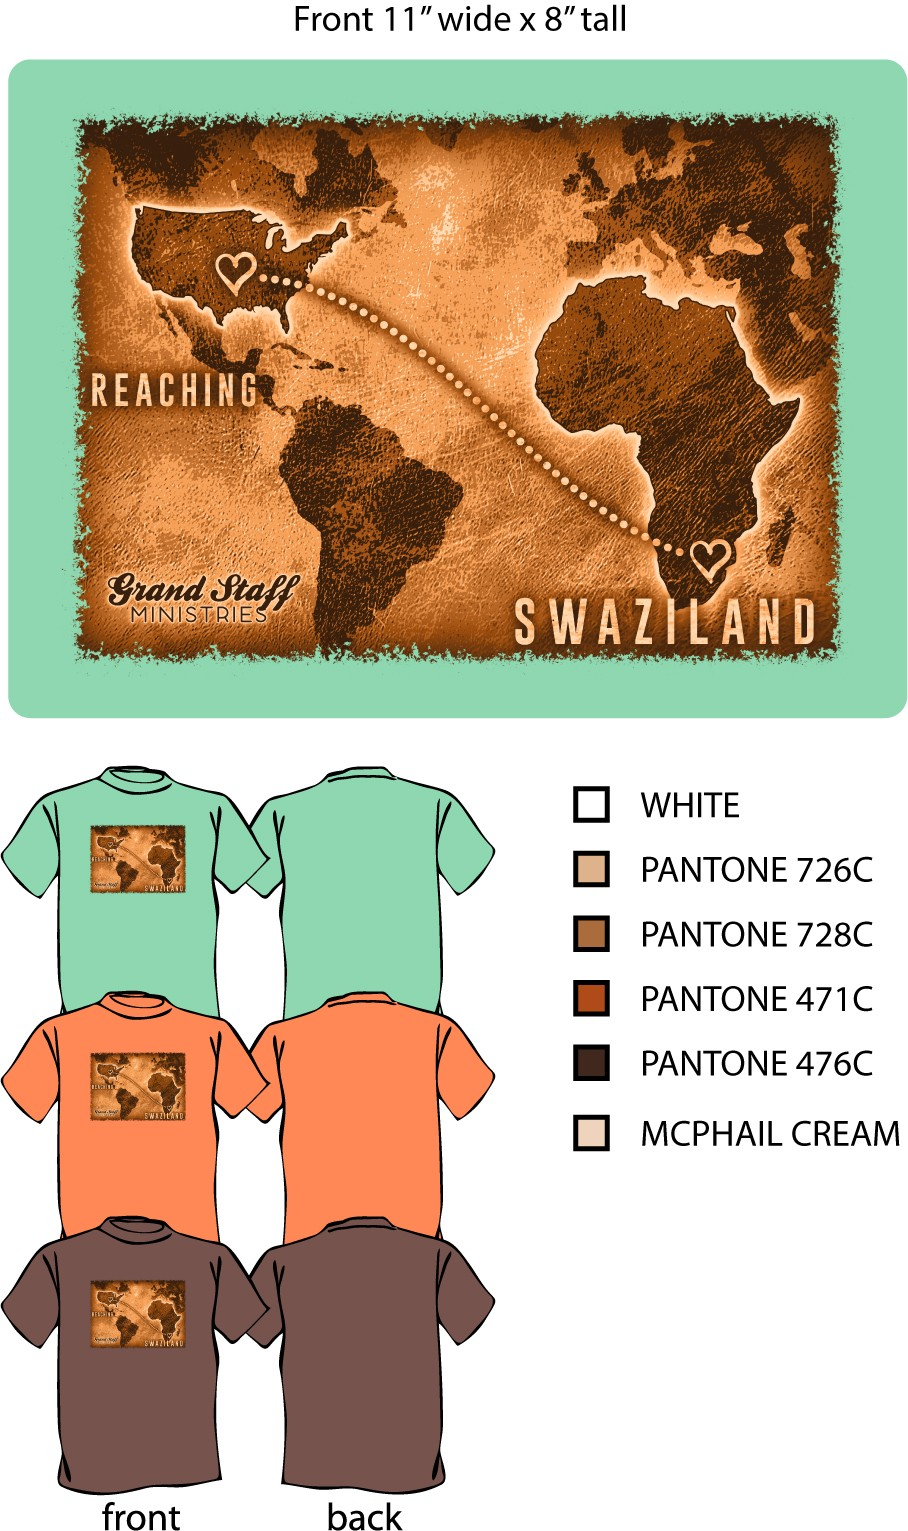 Reaching Swaziland Men's T-shirt, brown